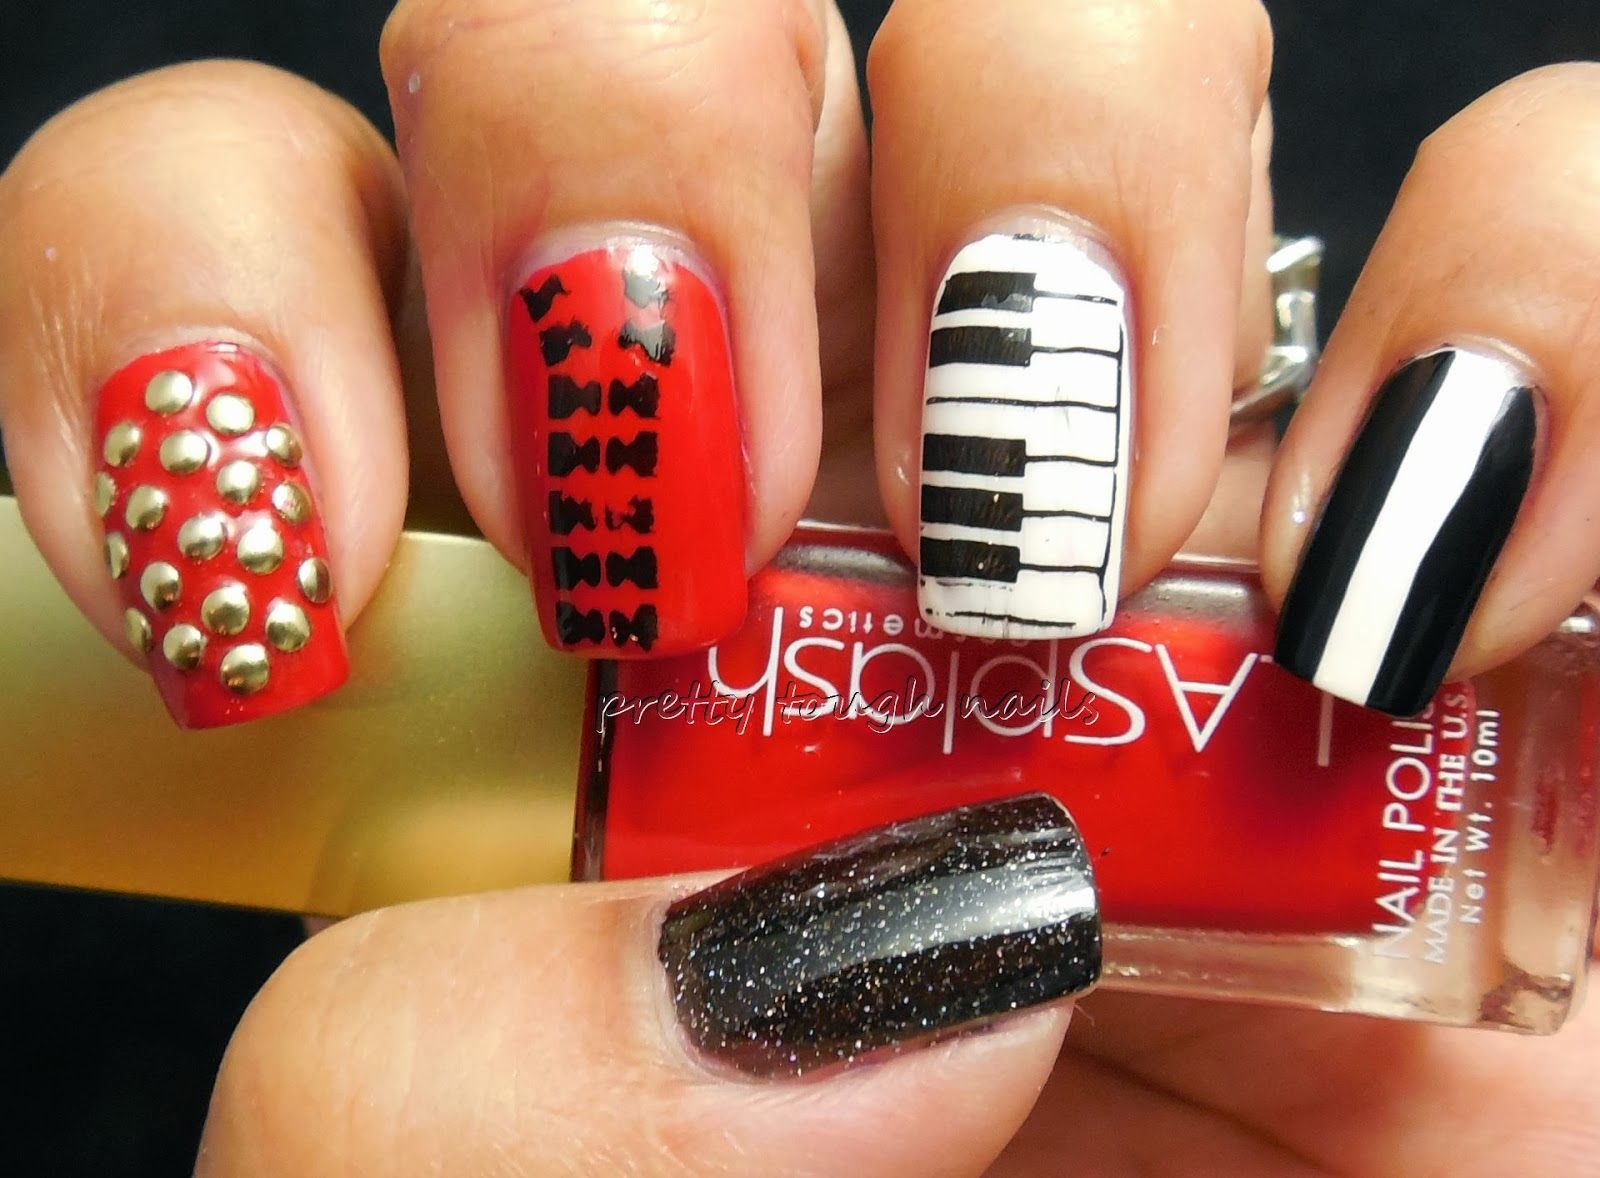 Prettytoughnails 31dc2013 inspired by a song michael 31dc2013 inspired by a song michael jacksons beat it prinsesfo Gallery